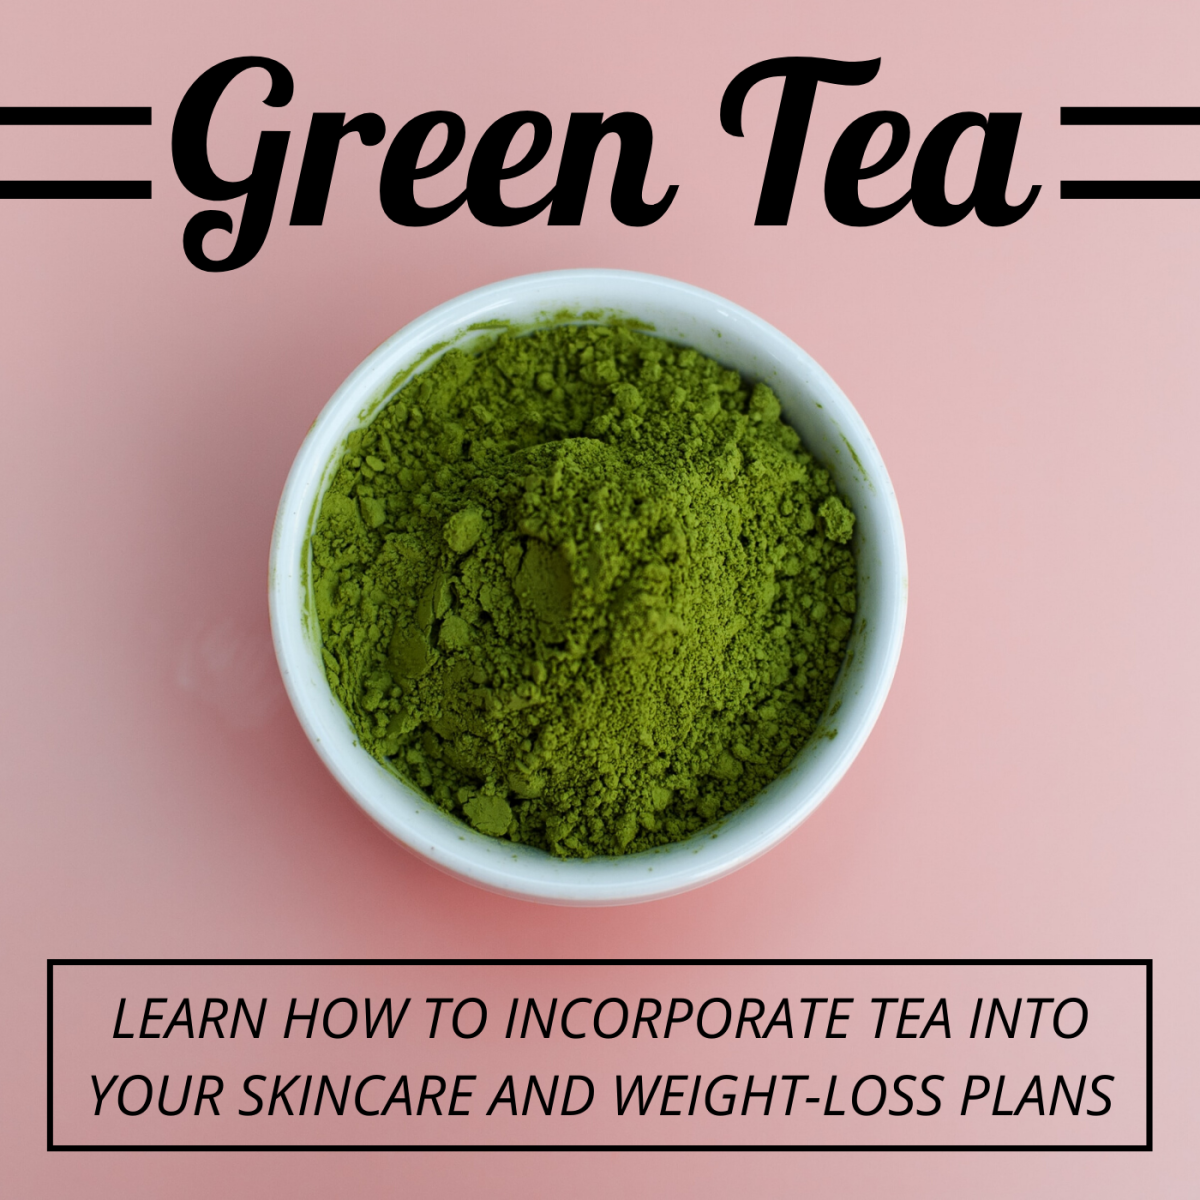 Learn how one of the world's favorite beverages might be an ally in your skincare and weight-loss journeys.